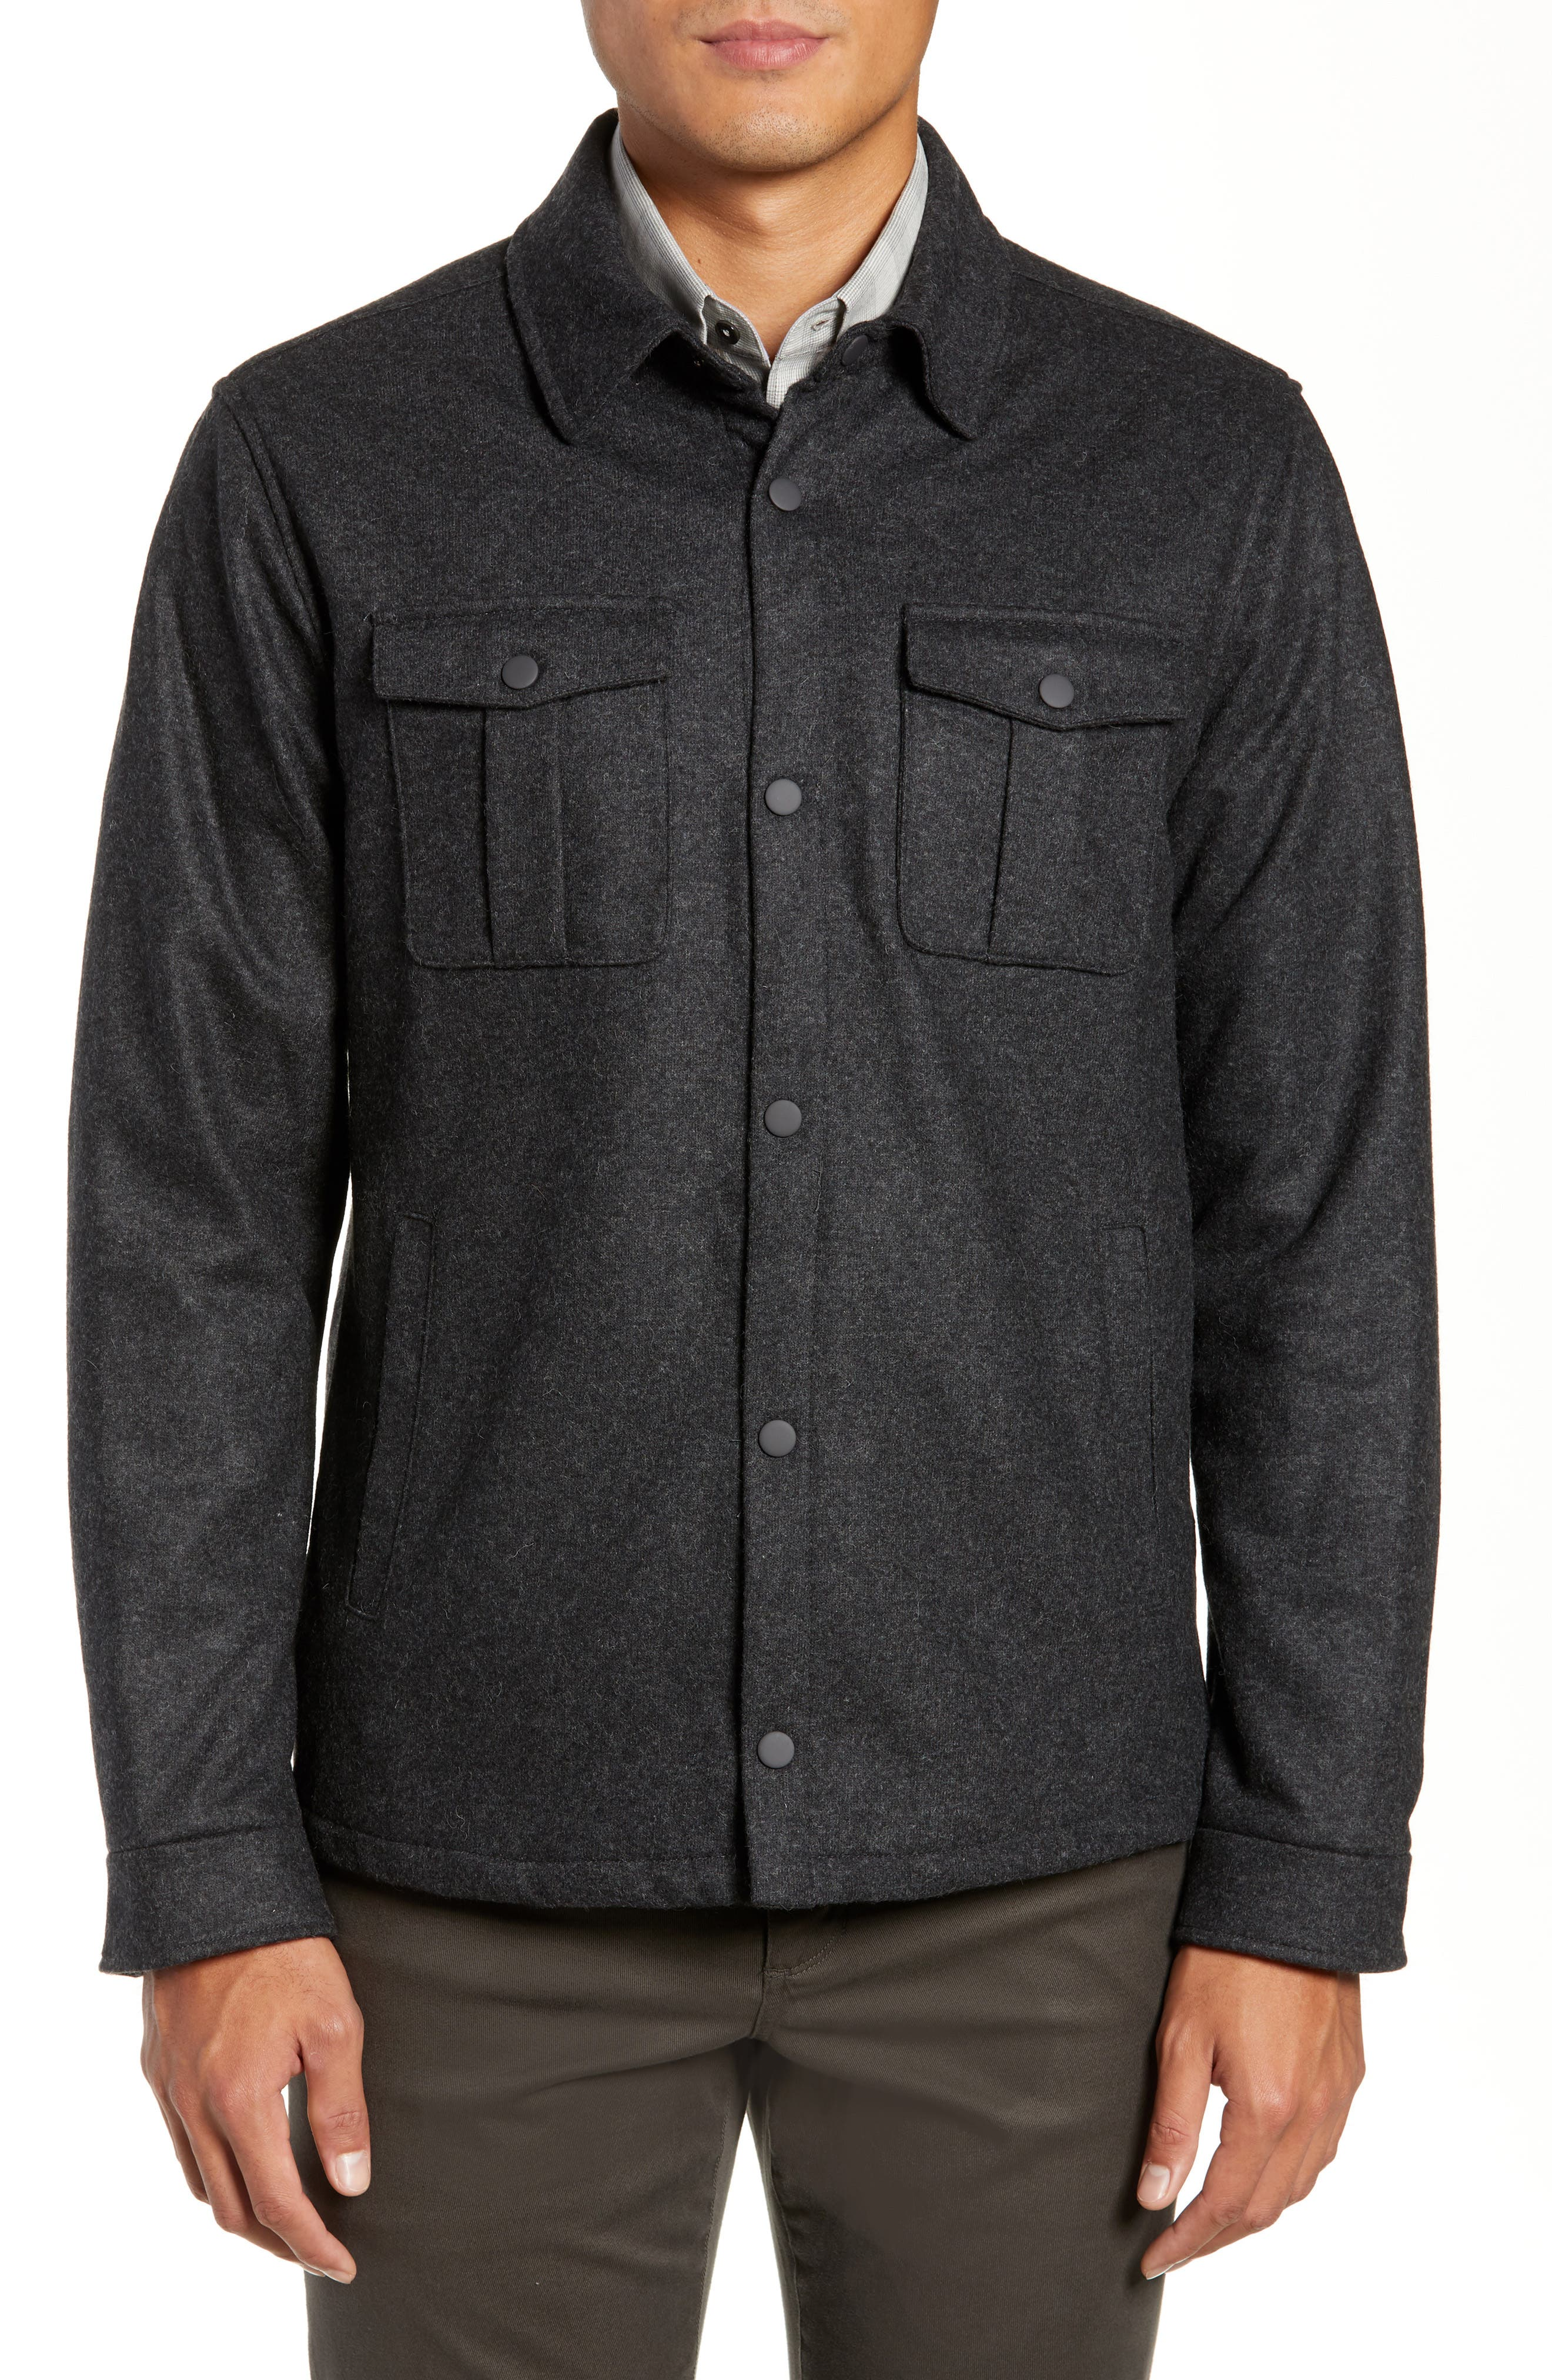 Seymour Regular Fit Wool Blend Shirt Jacket,                             Alternate thumbnail 4, color,                             DARK GREY